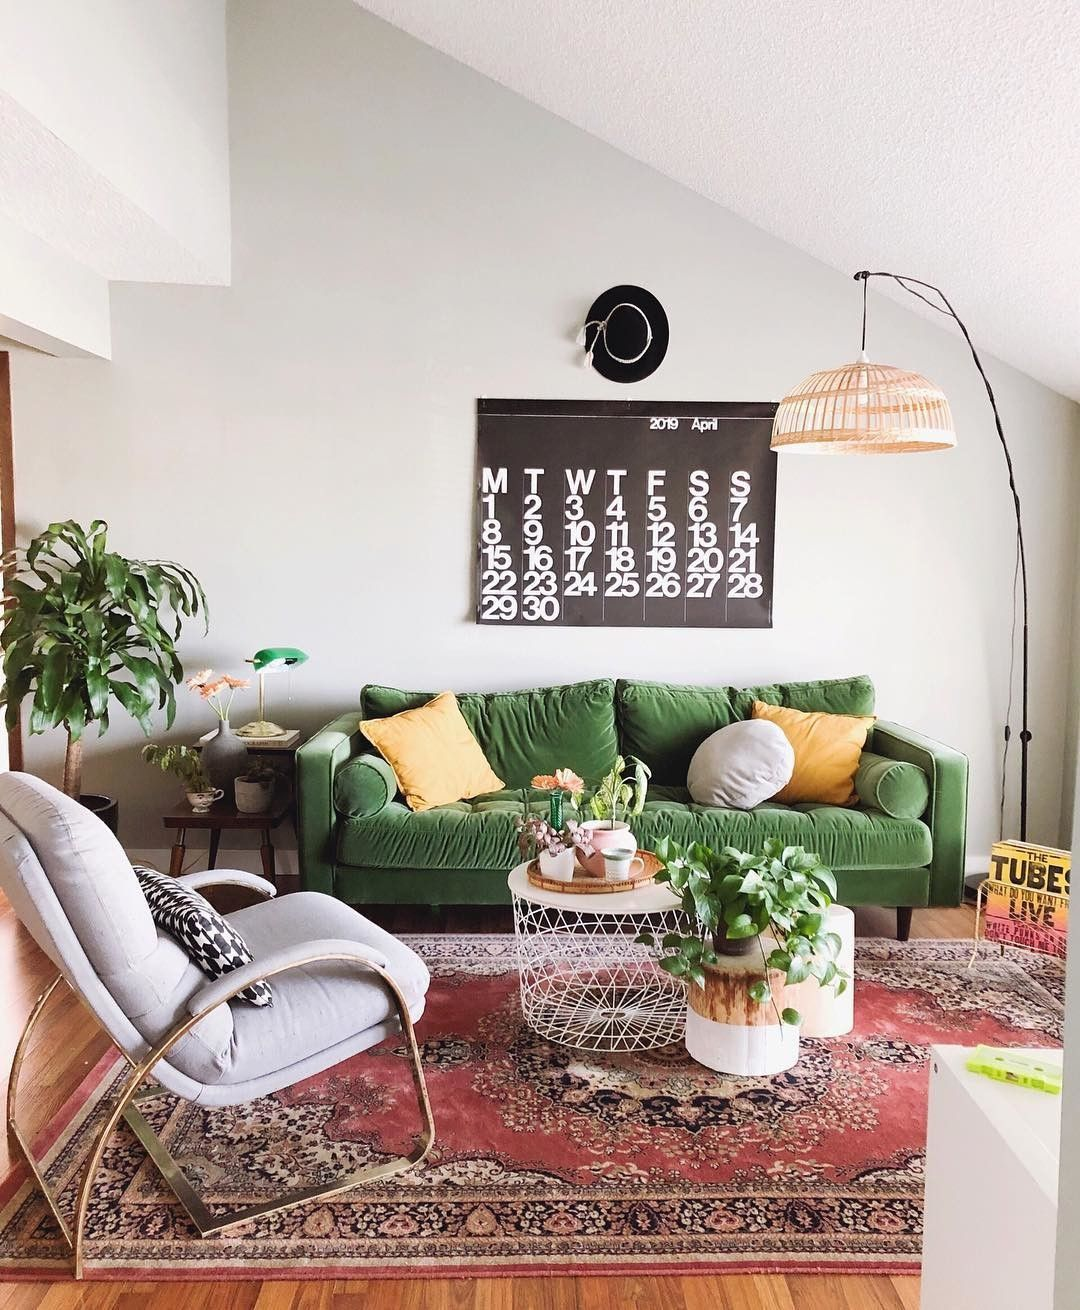 Pin On Living Space Ideas #non #matching #sofas #in #living #room